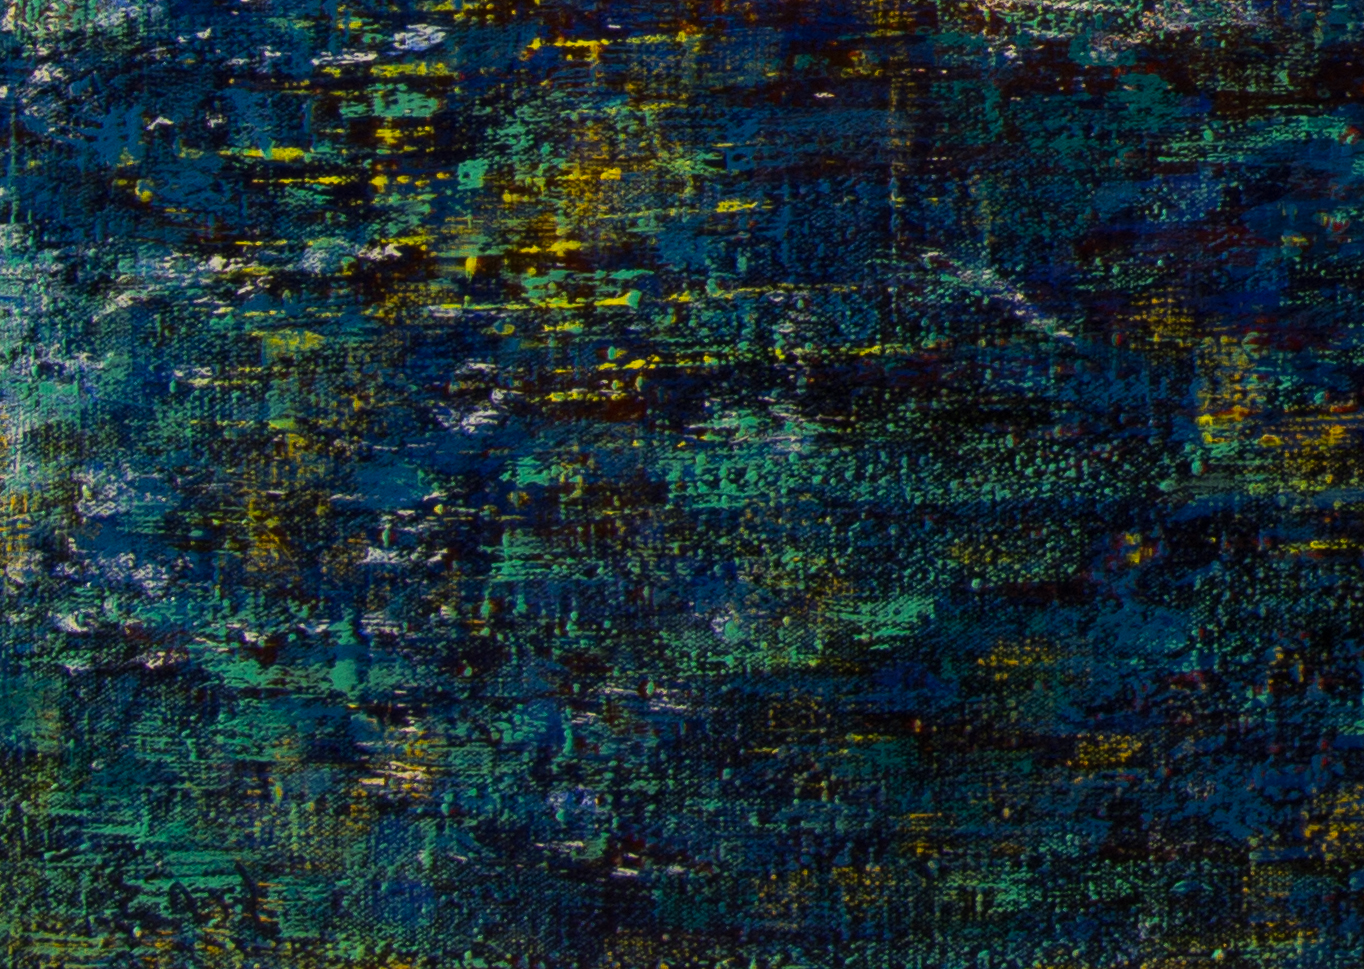 Cerulean Blues-close up with signature